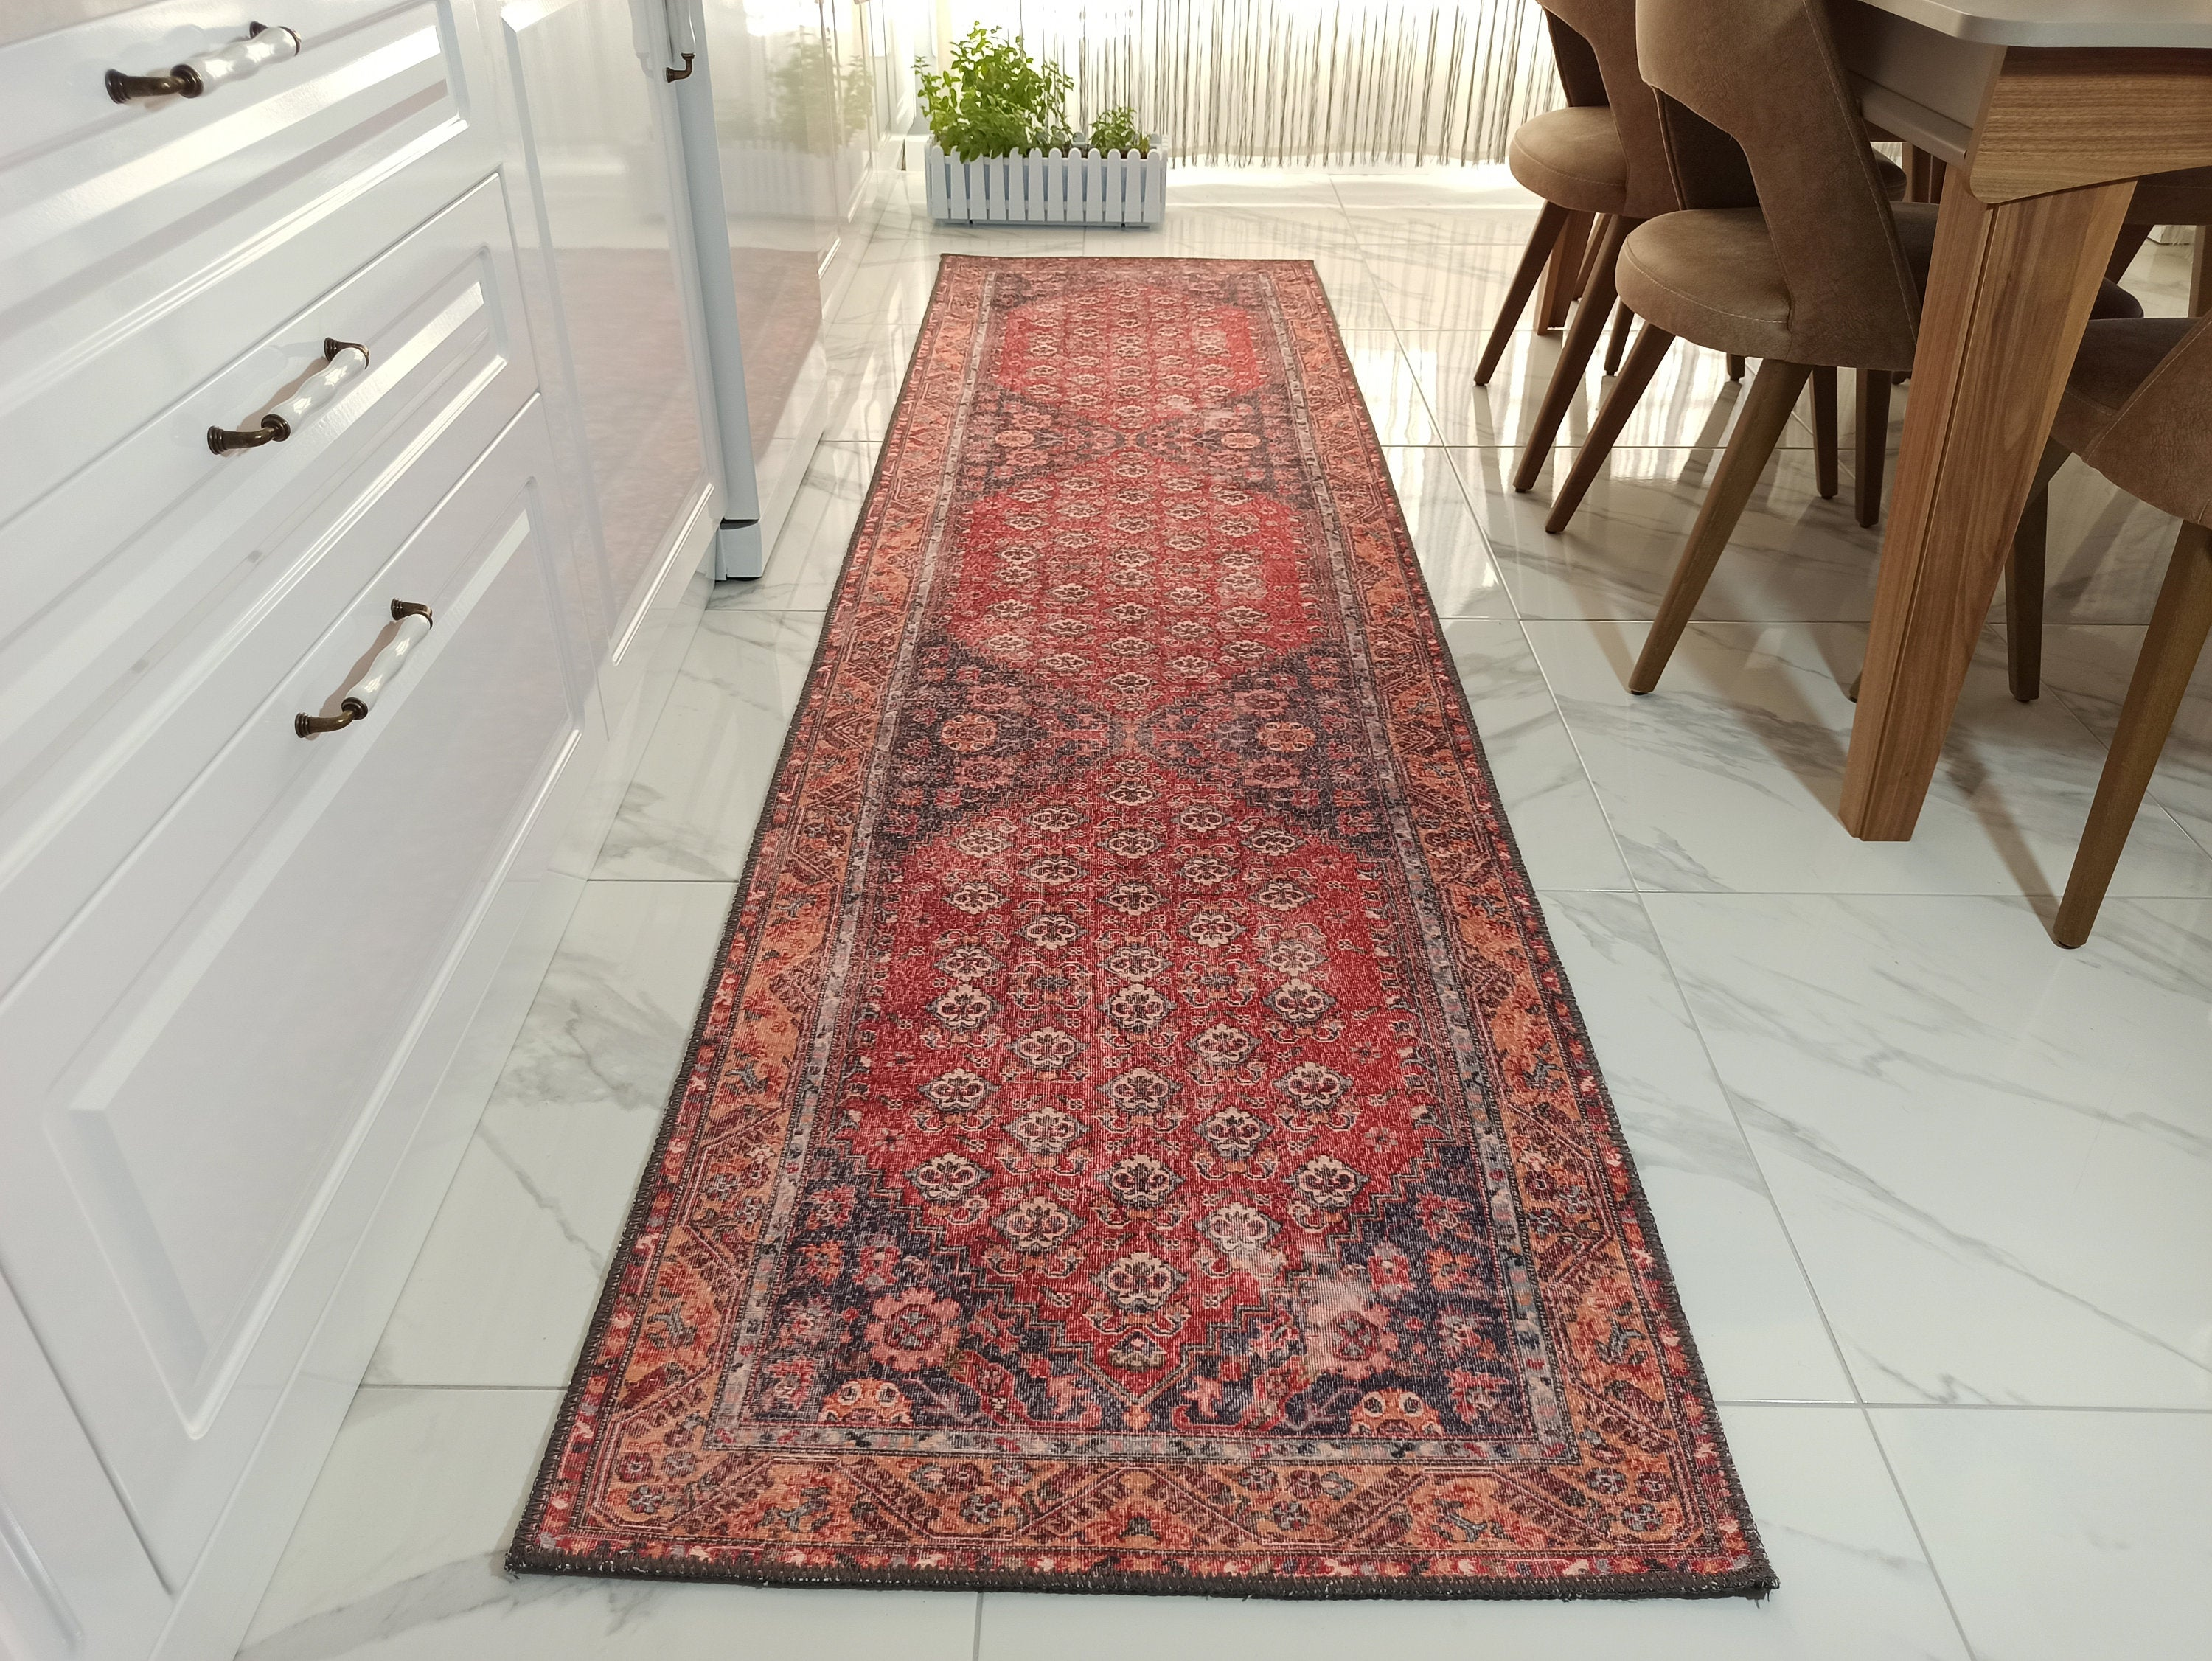 NARA Runner | Oriental Turkish Vintage Design Runners, Farmhouse decor, Red, Orange, Gray, Hallway Runner Rug, Unique Luxury Designer Carpet